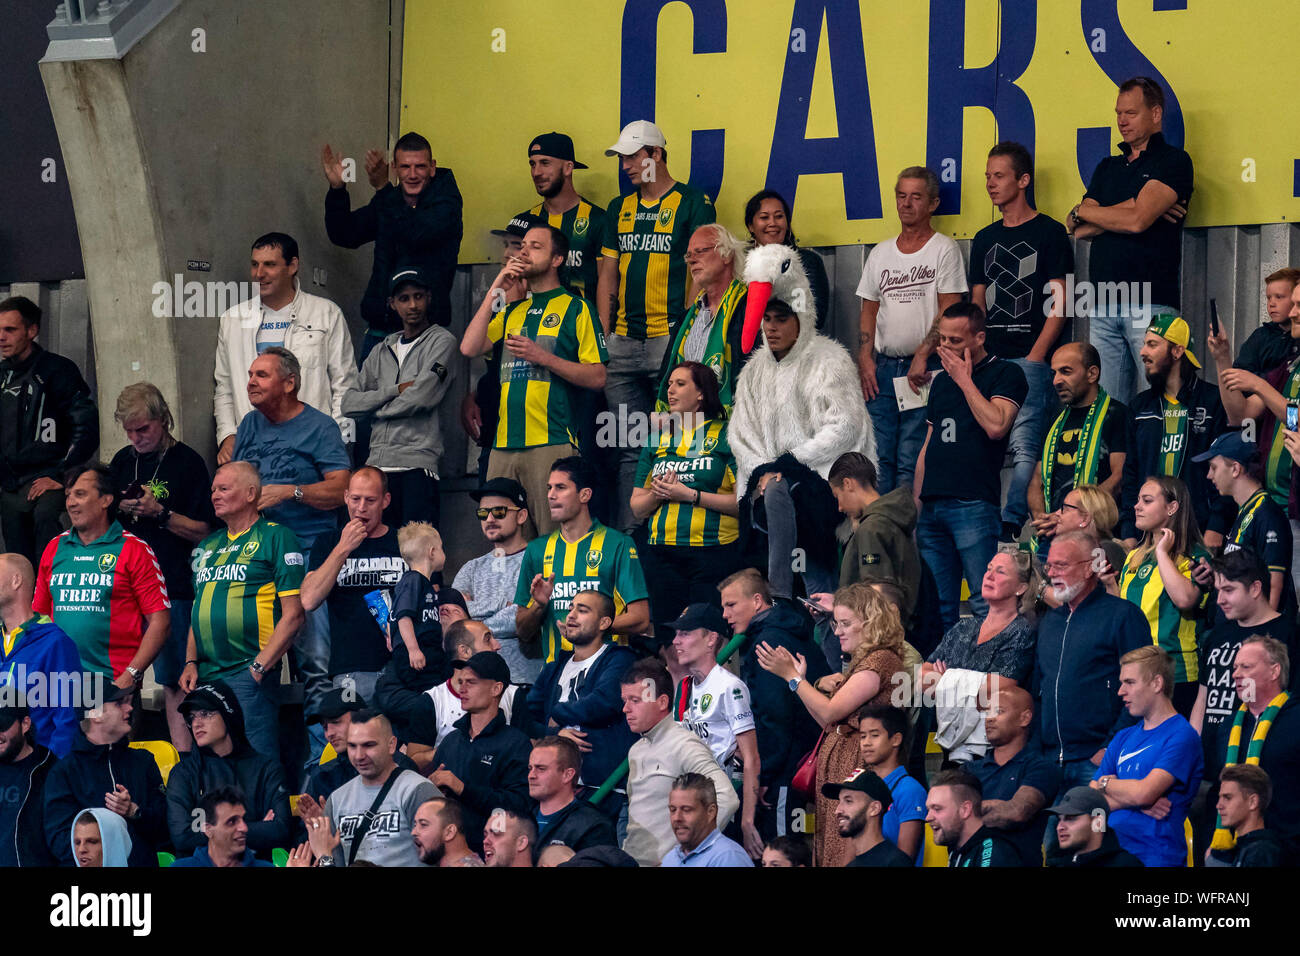 Den Haag Netherlands 31st Aug 2019 Football Dutch Eredivisie Season 2019 2020 Supporters Of Ado Den Haag During The Match Ado Vvv Credit Pro Shots Alamy Live News Stock Photo Alamy